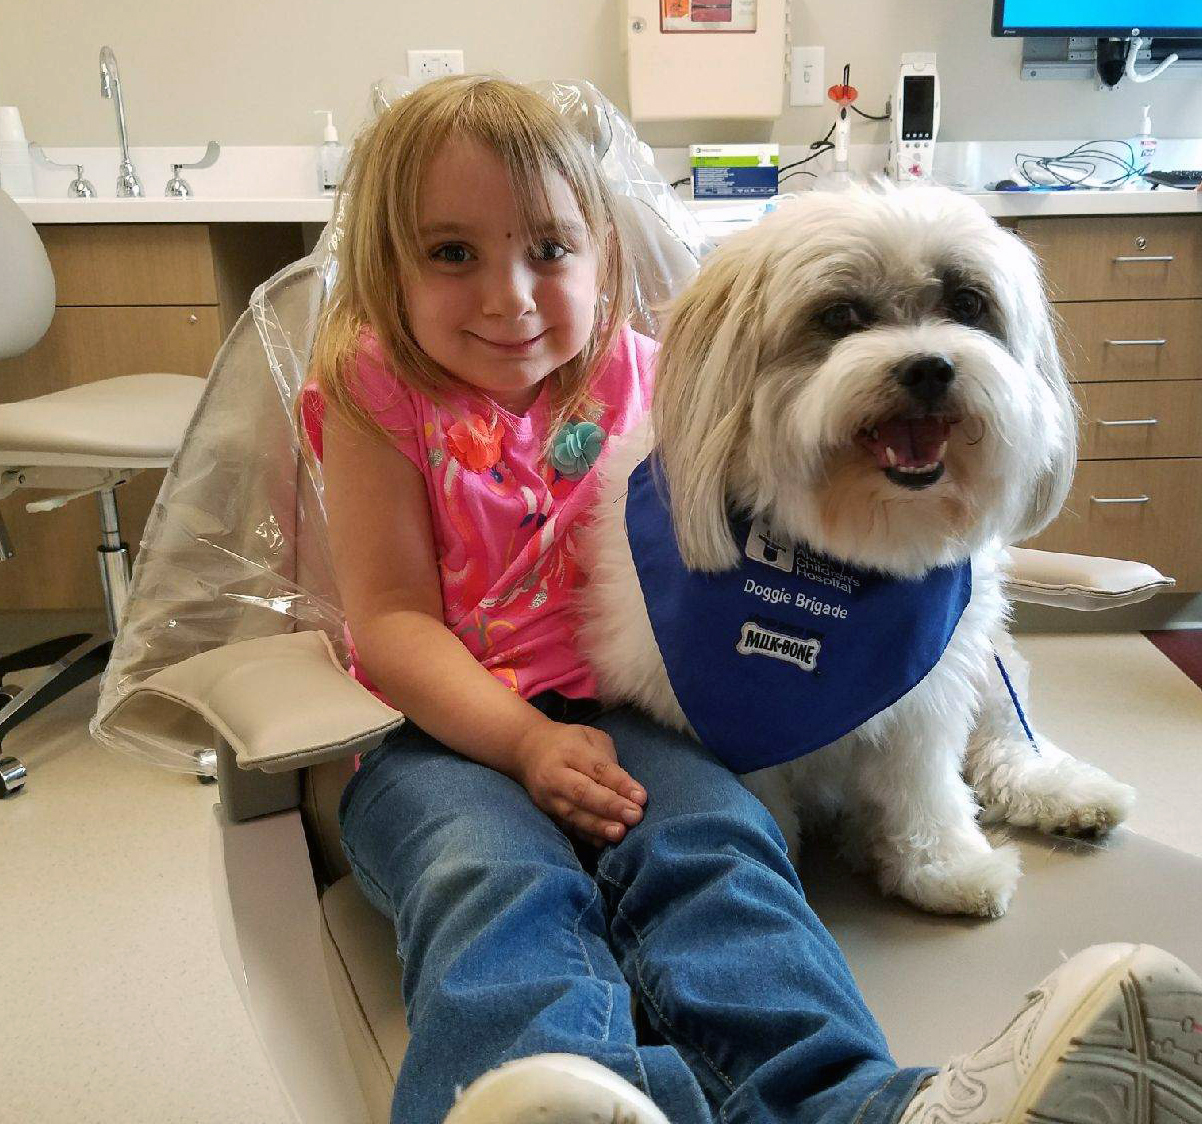 These Children's Hospital Therapy Dogs Are Everything We Need In The World Right Now